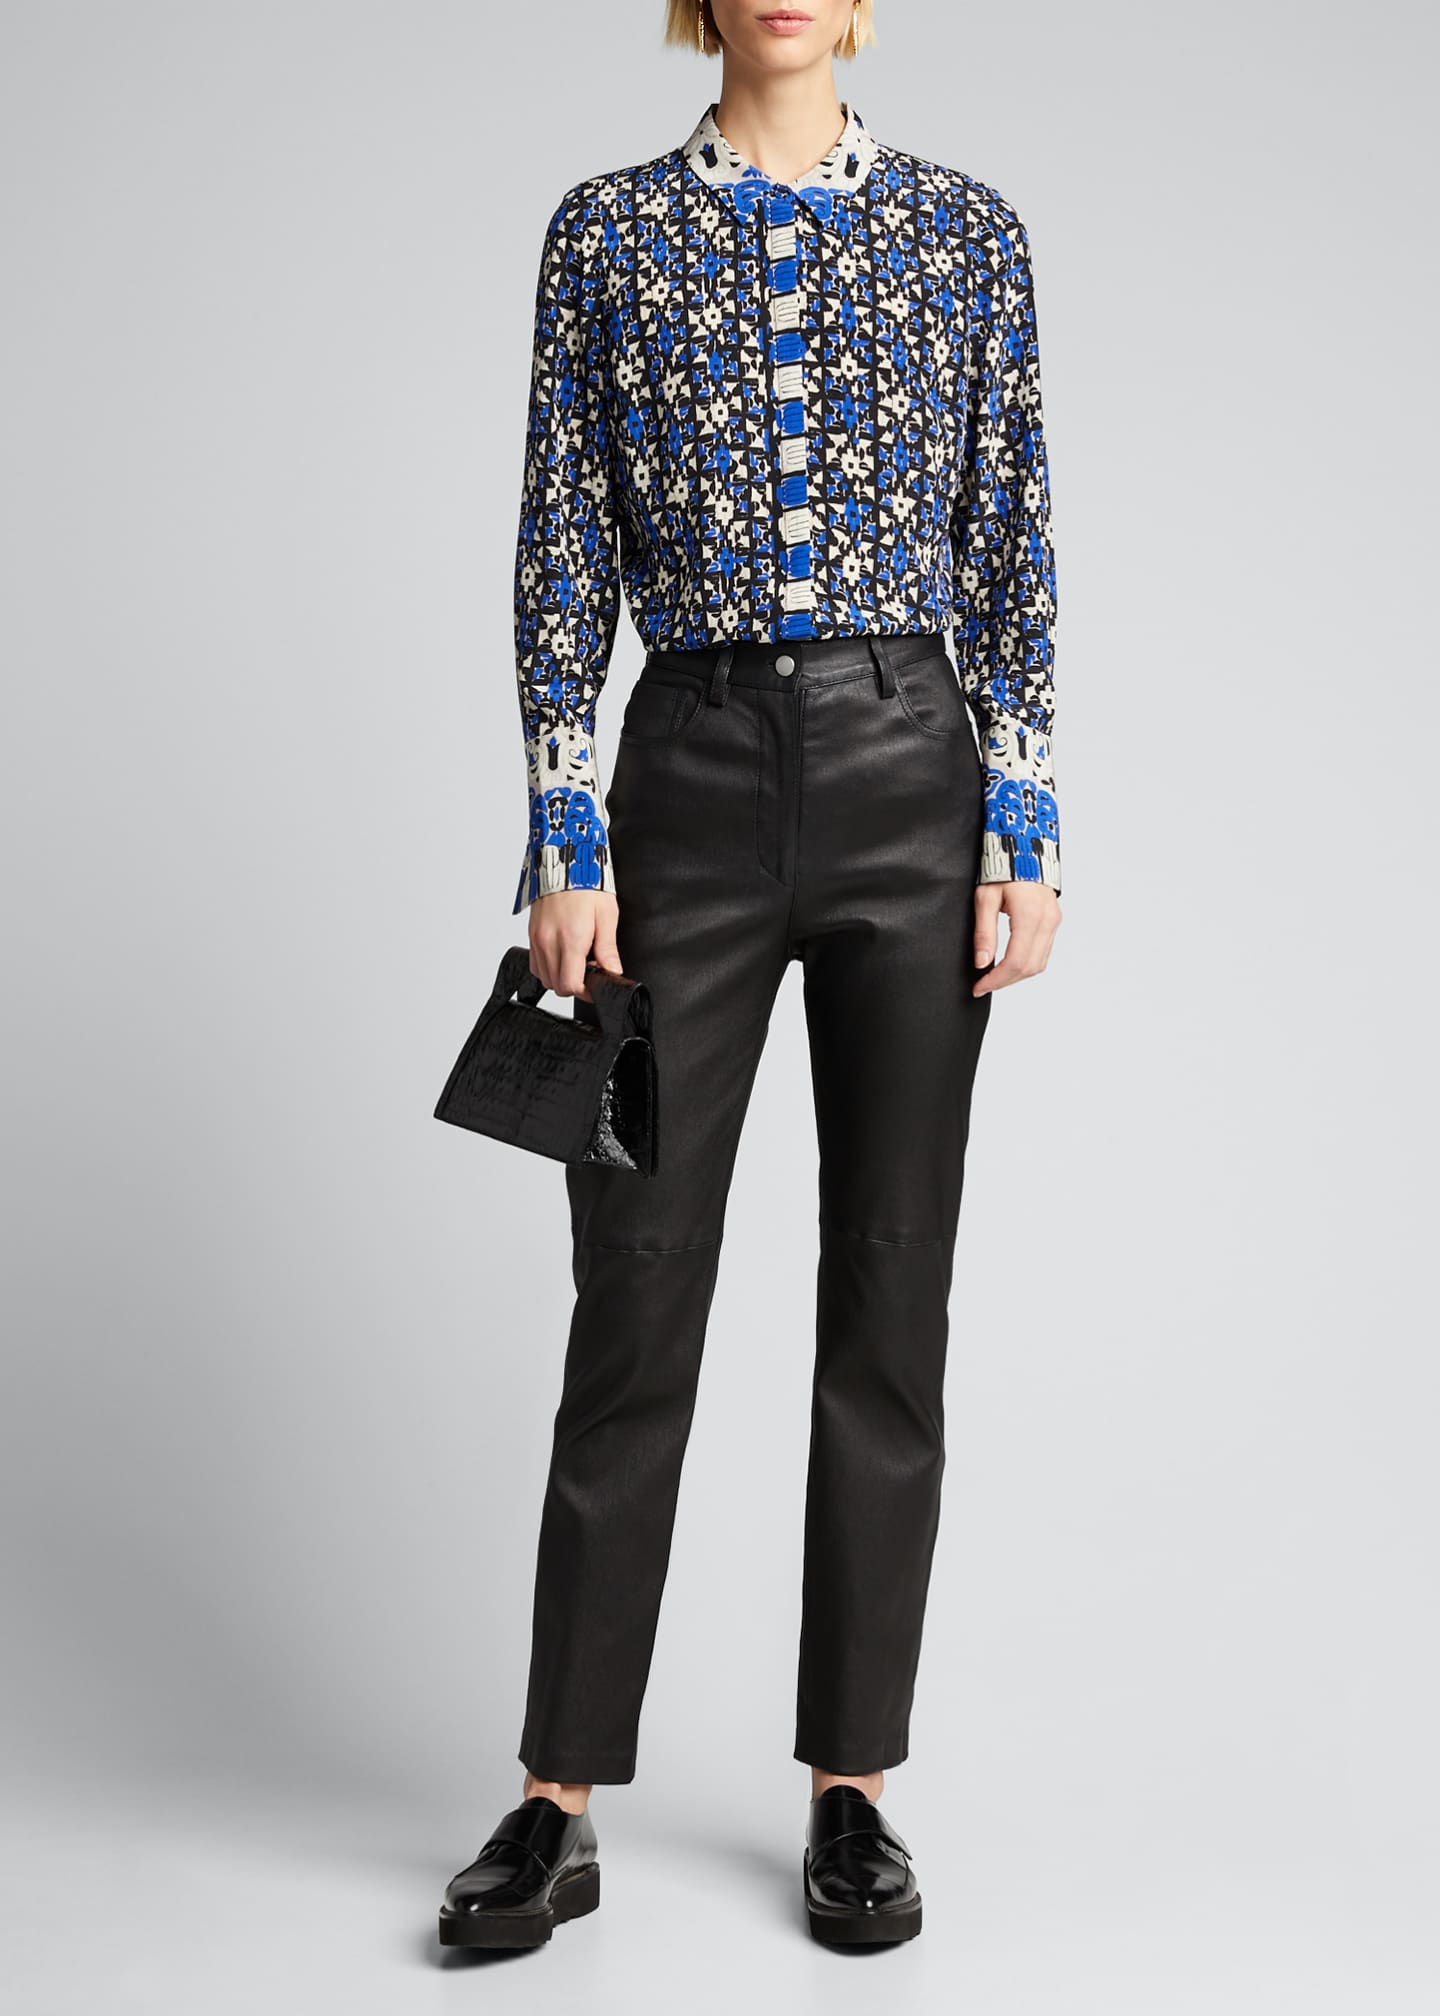 Kobi Halperin Marla Printed Button-Down Silk Blouse